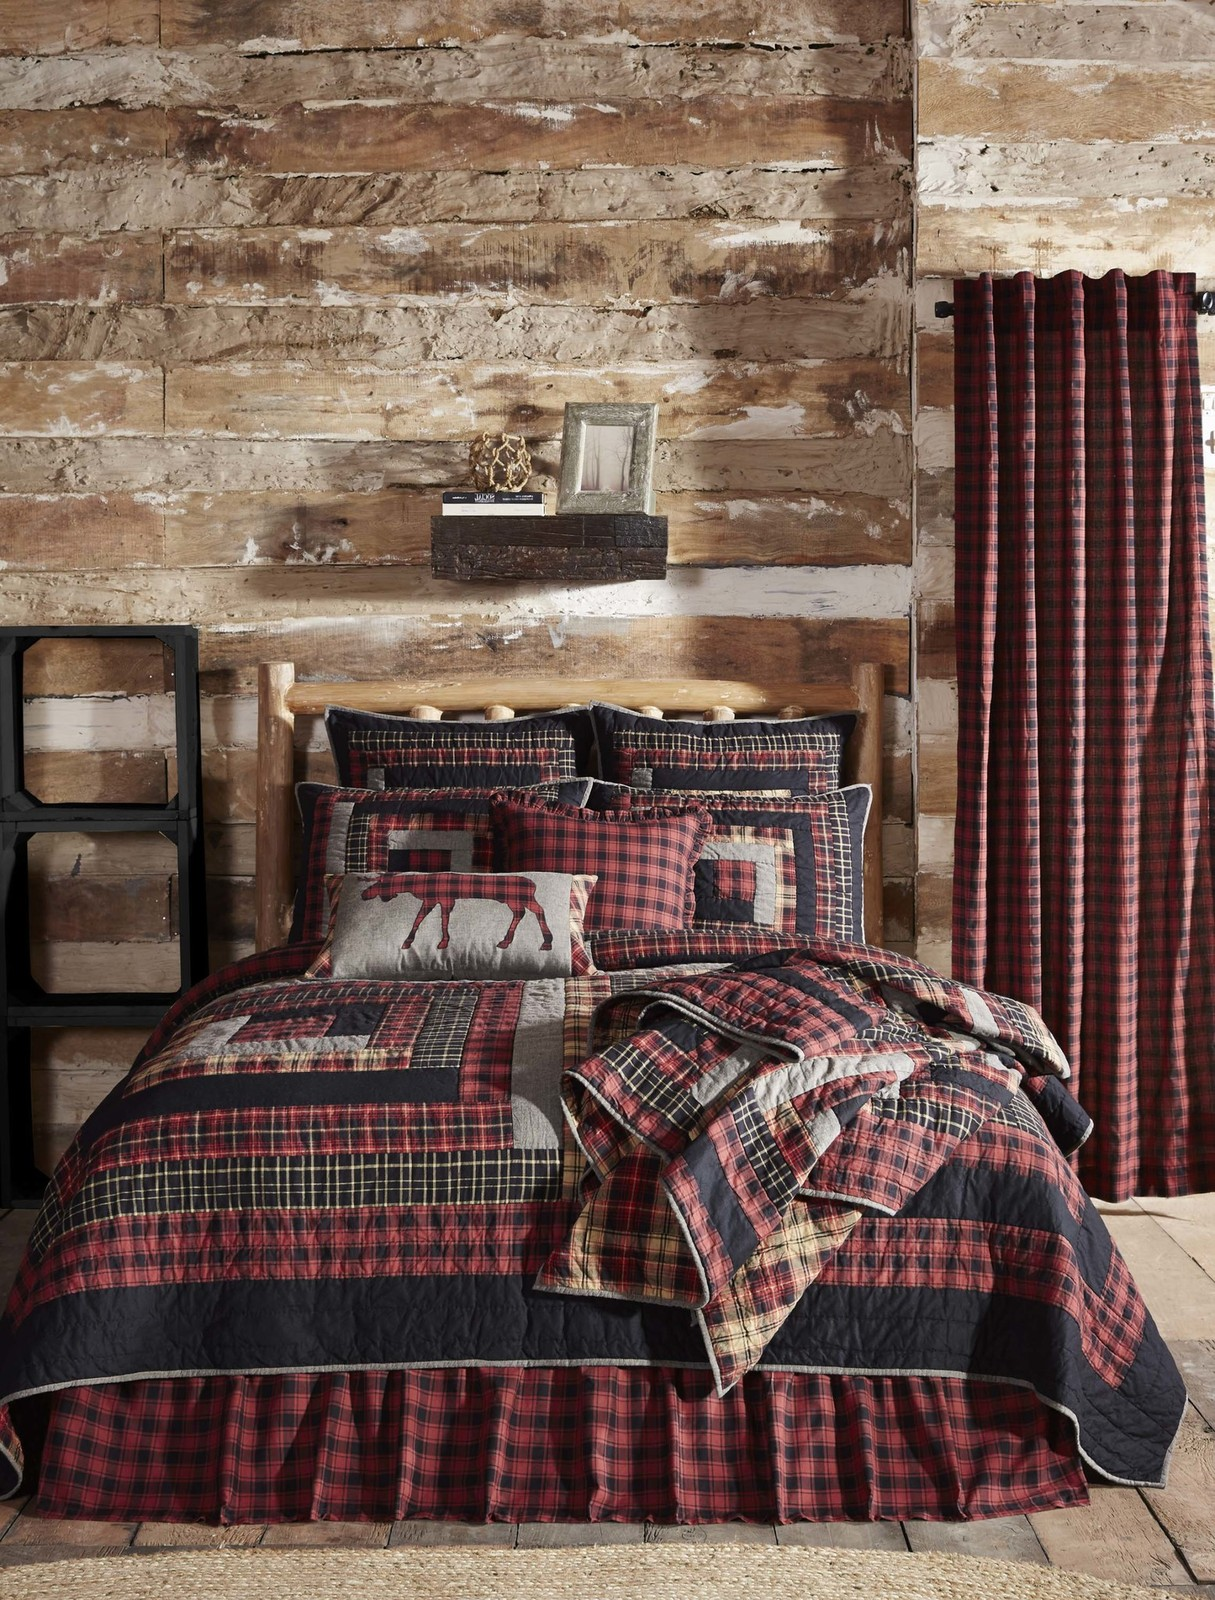 10-pc Cumberland King Quilt Set - Red Plaid Edition - Vhc Brands Rustic Charm